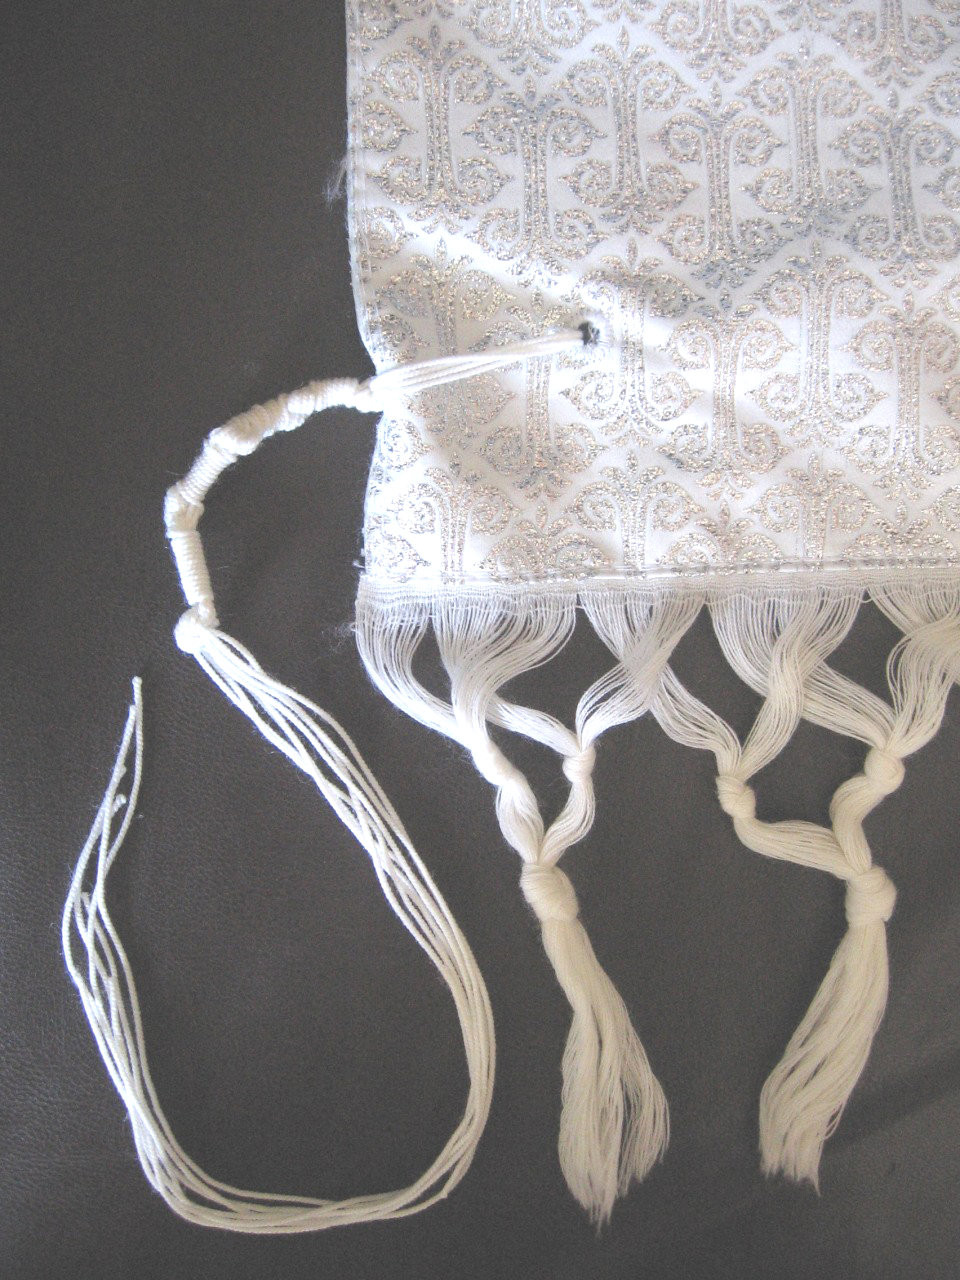 Silver embroidery on the corners